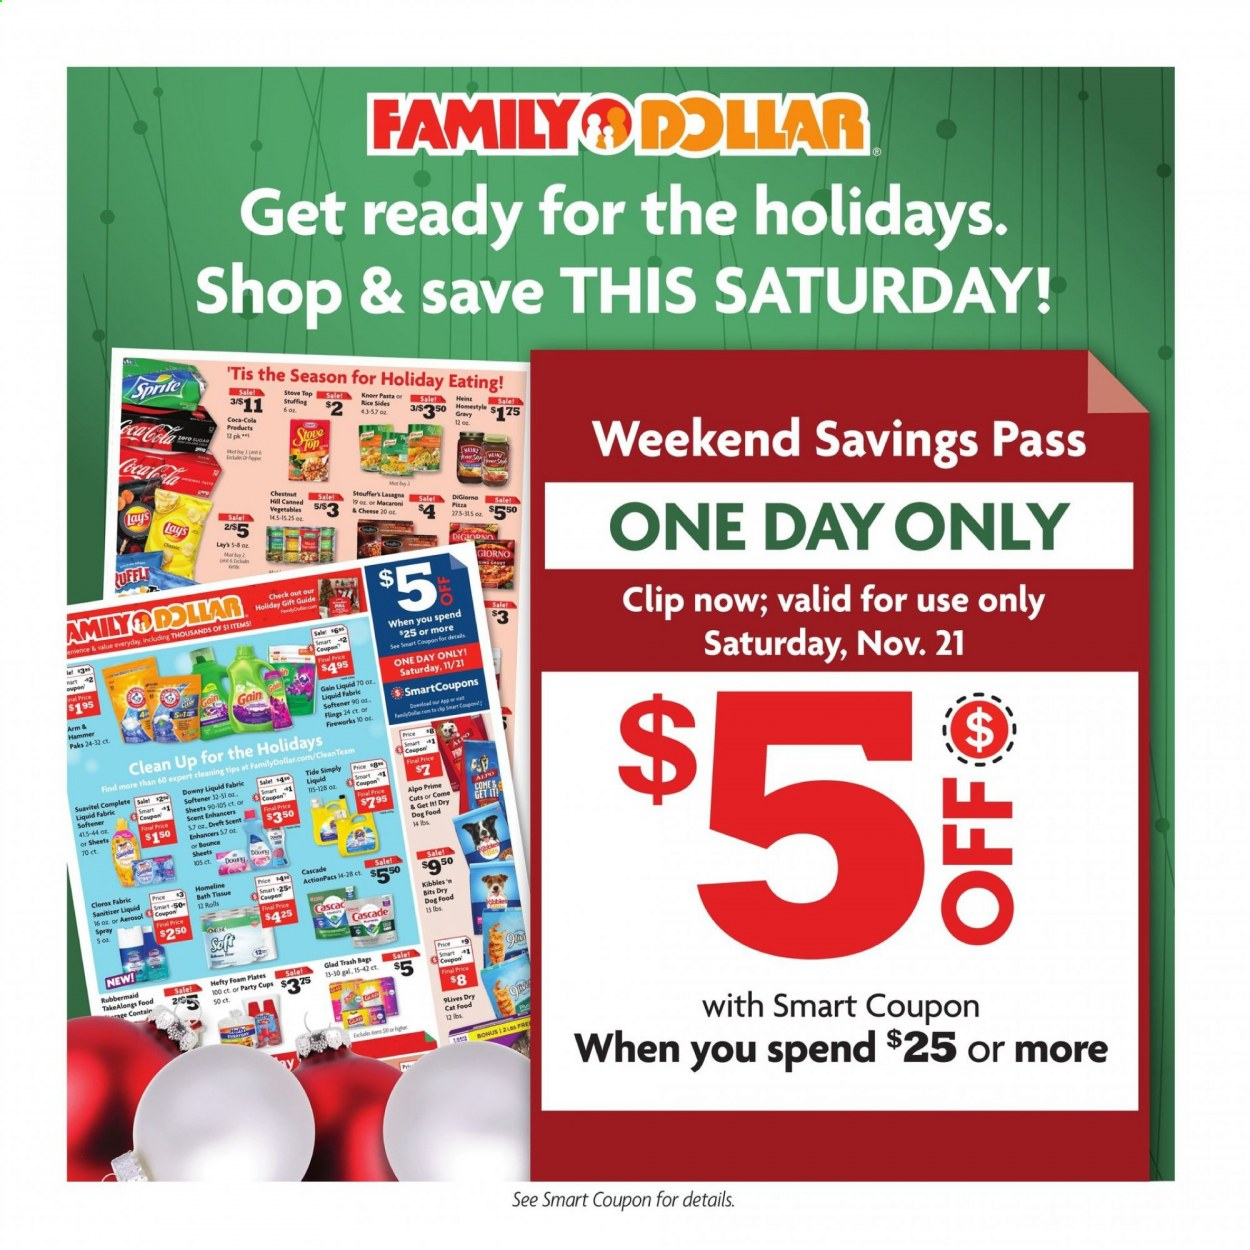 Family Dollar Flyer - 11.15.2020 - 11.21.2020 - Sales products - animal food, ARM & HAMMER, bag, bath tissue, cascade, cat food, Coca-Cola, dog food, Downy, Gain, macaroni & cheese, rice, Sprite, sugar, Tide, Hefty, Heinz, pizza, plate, chestnuts, cheese, macaroni, canned vegetables, Vegetables, pepper, hammer, softener, pasta, Lay's, Knorr, stove, foam plates, party cups, kettle, vegetable, trash bags. Page 1.